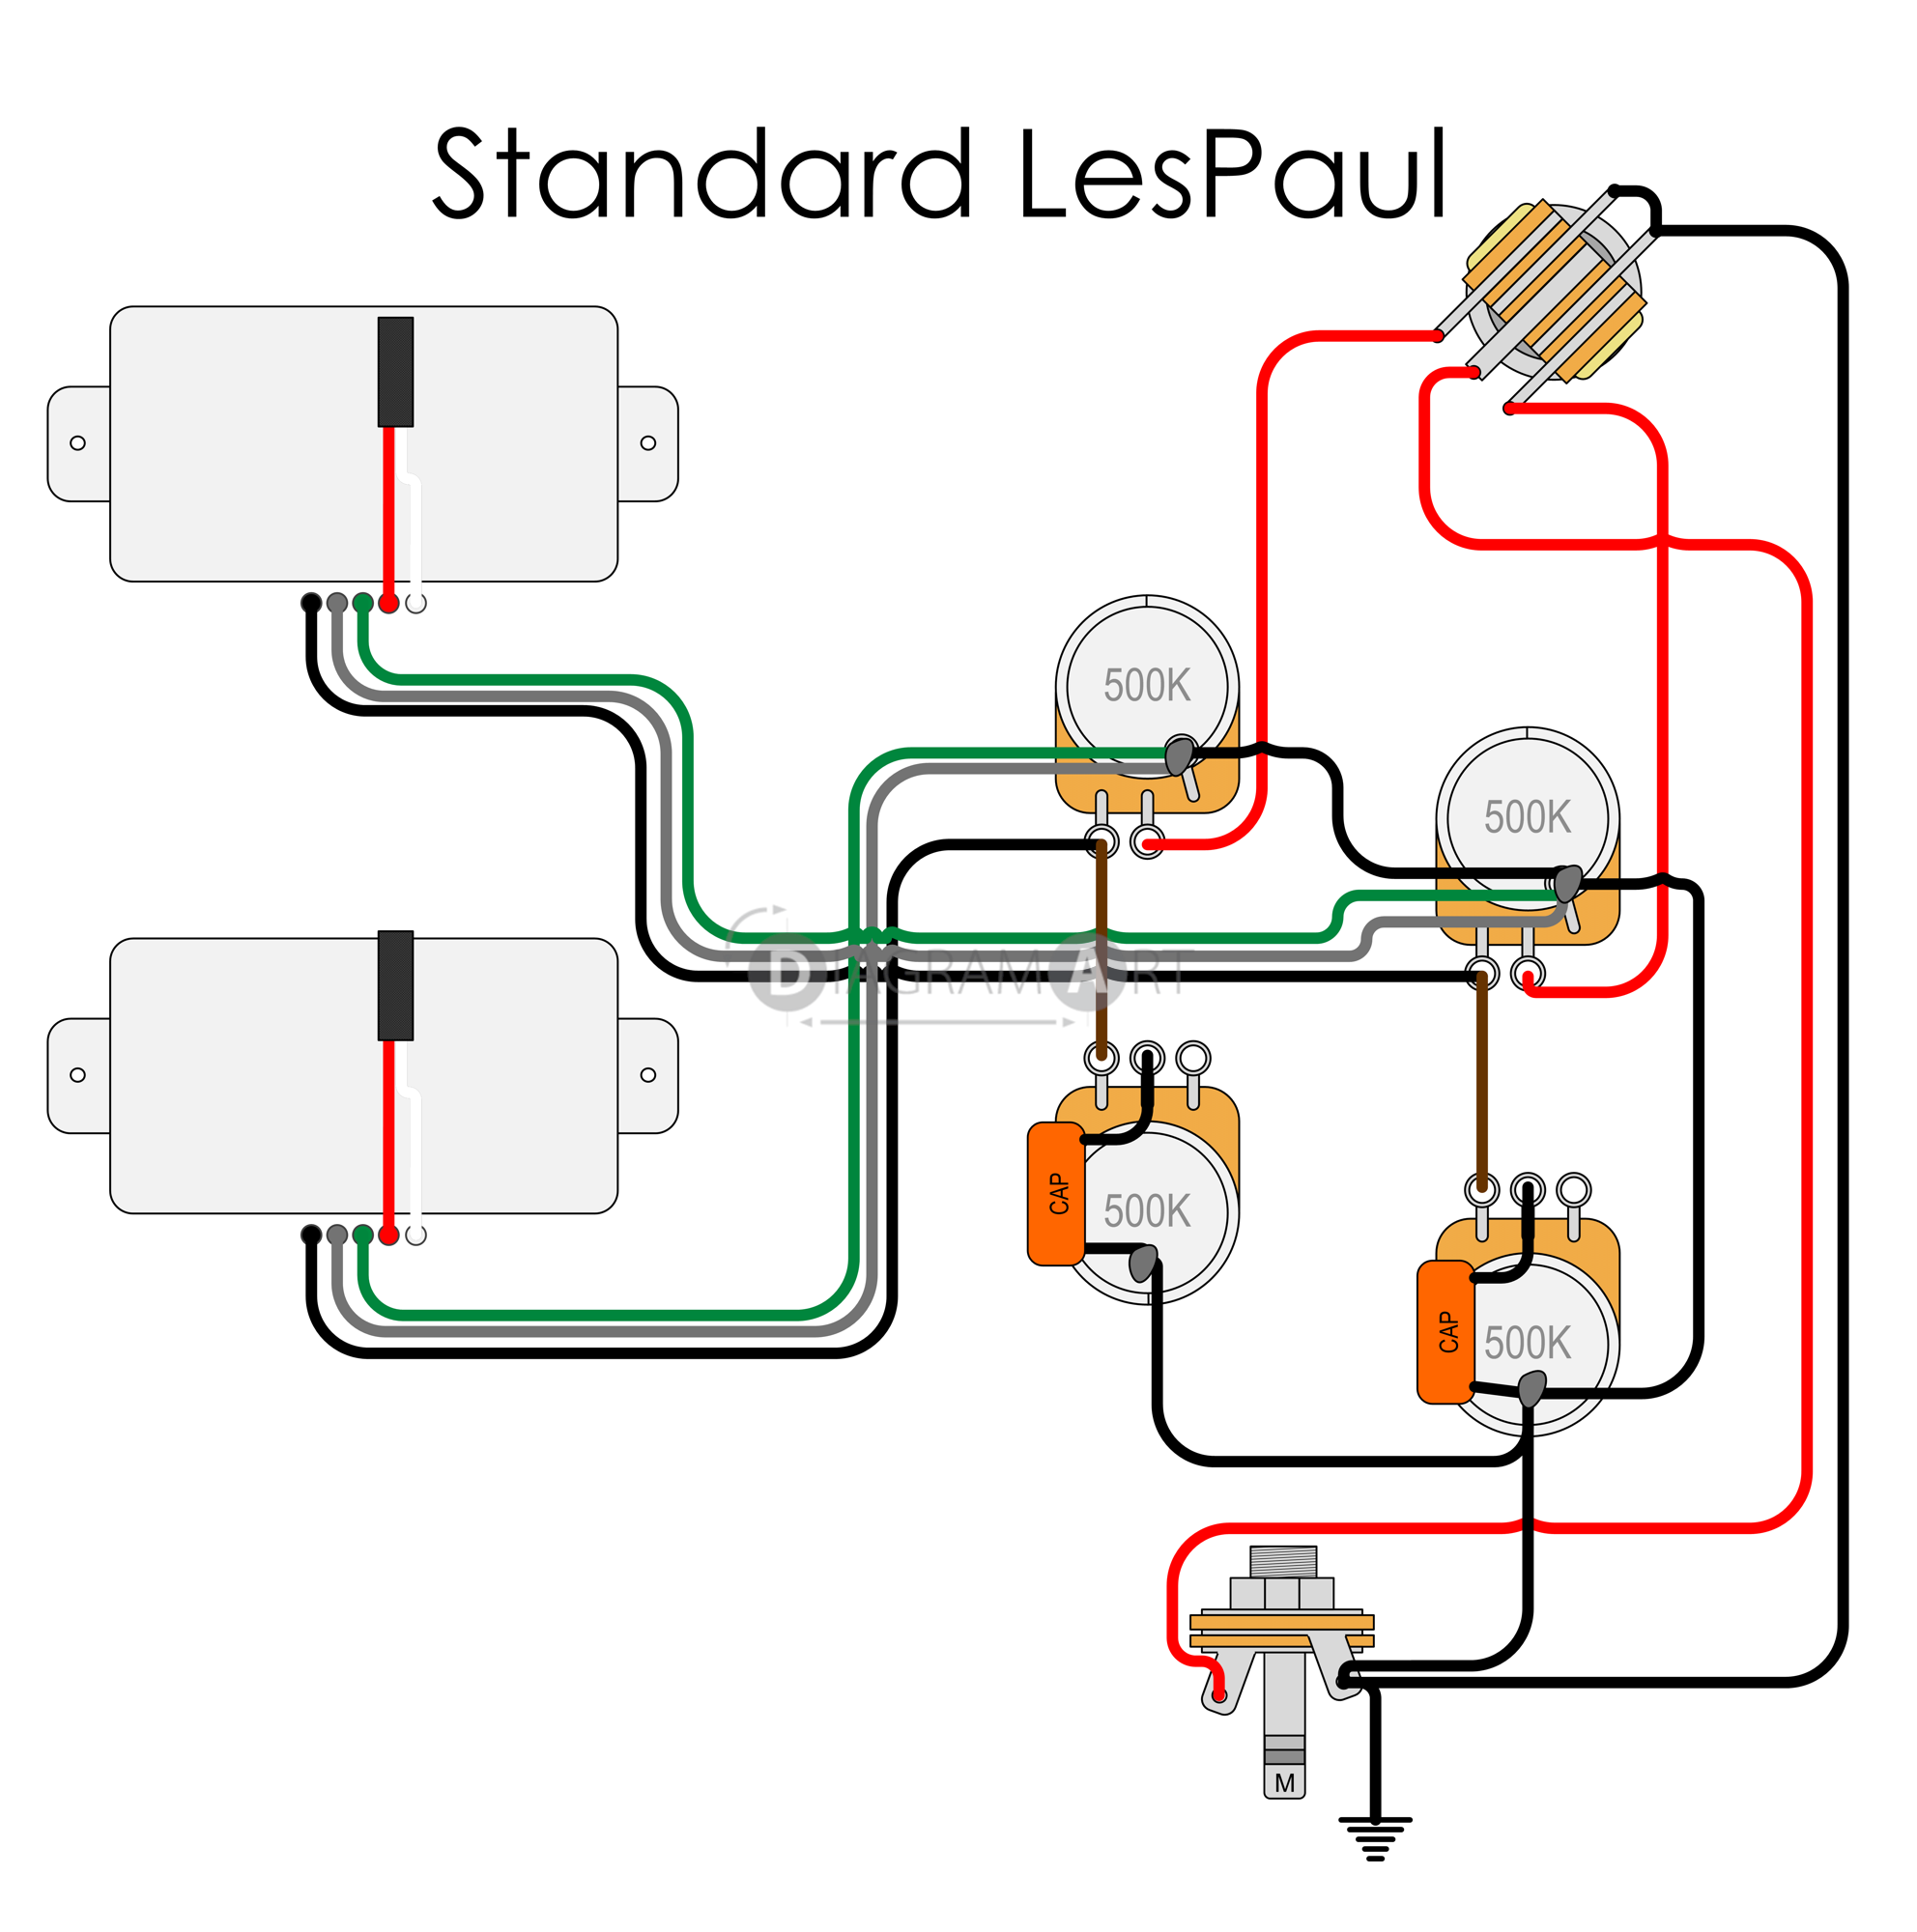 Standard Wiring Diagram Electrical Archtop Les Paul Schematic Diagrams